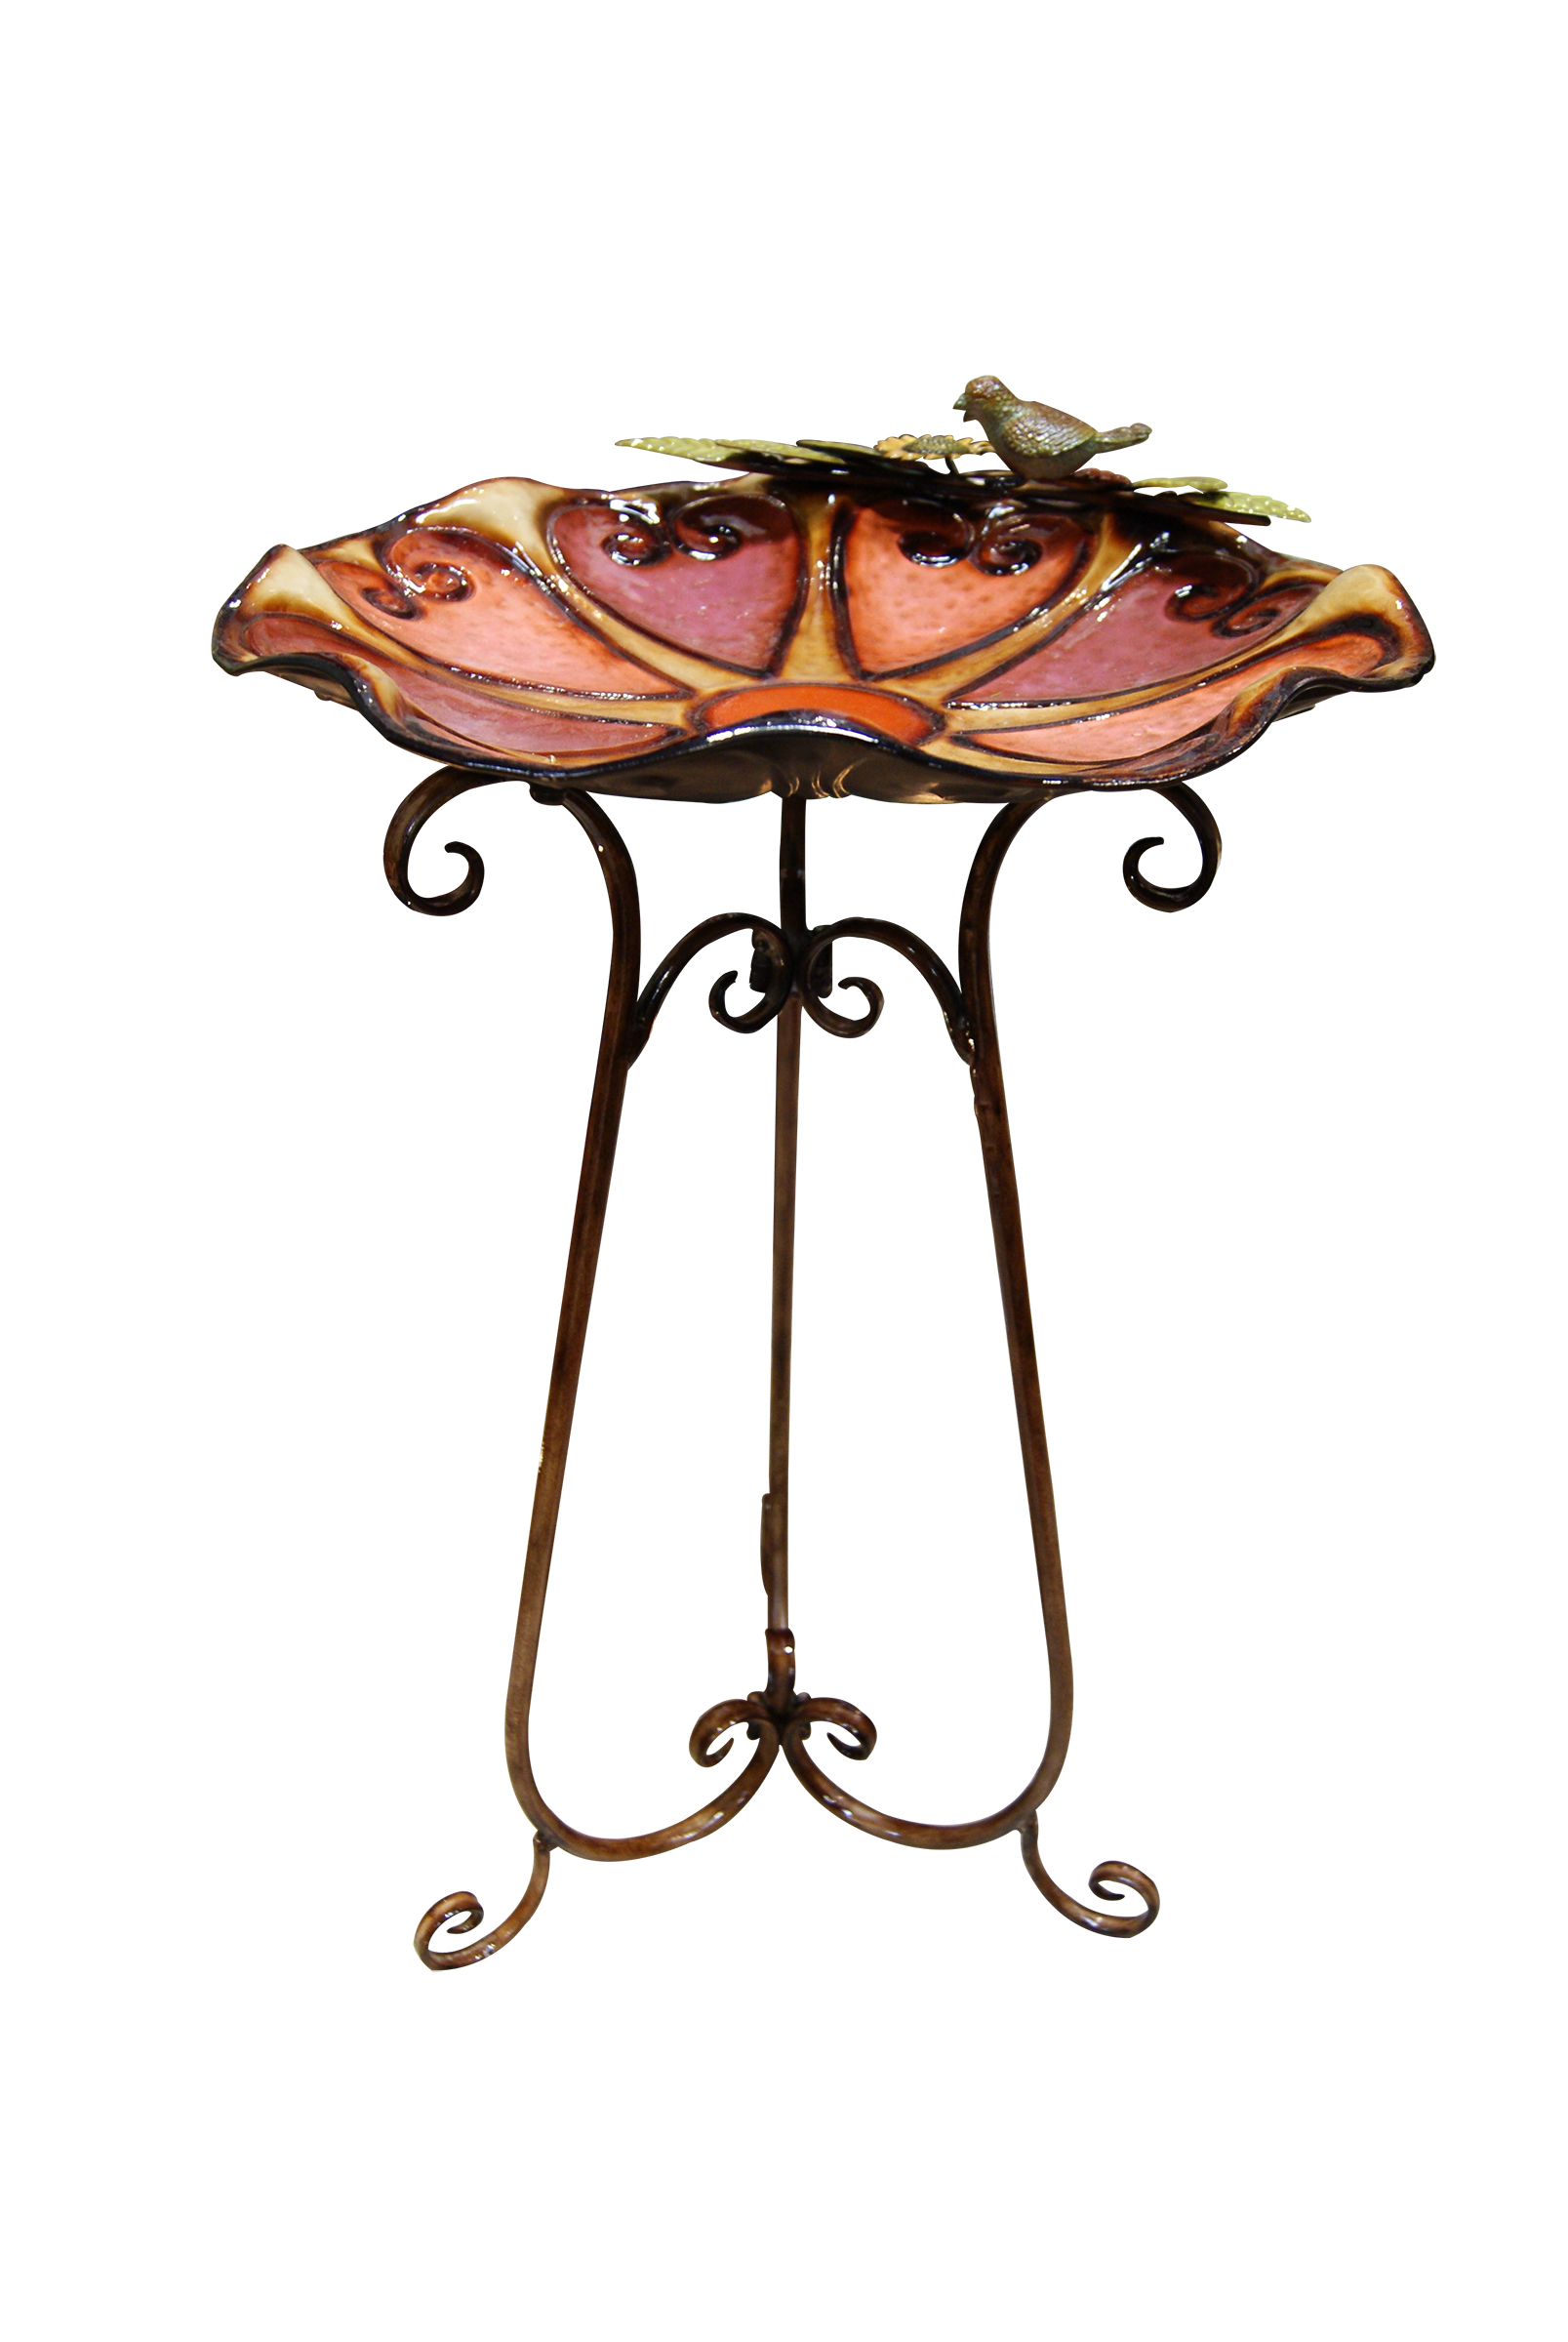 Ors198 19 Inch Red Hearts Metal Birdbath With Bird